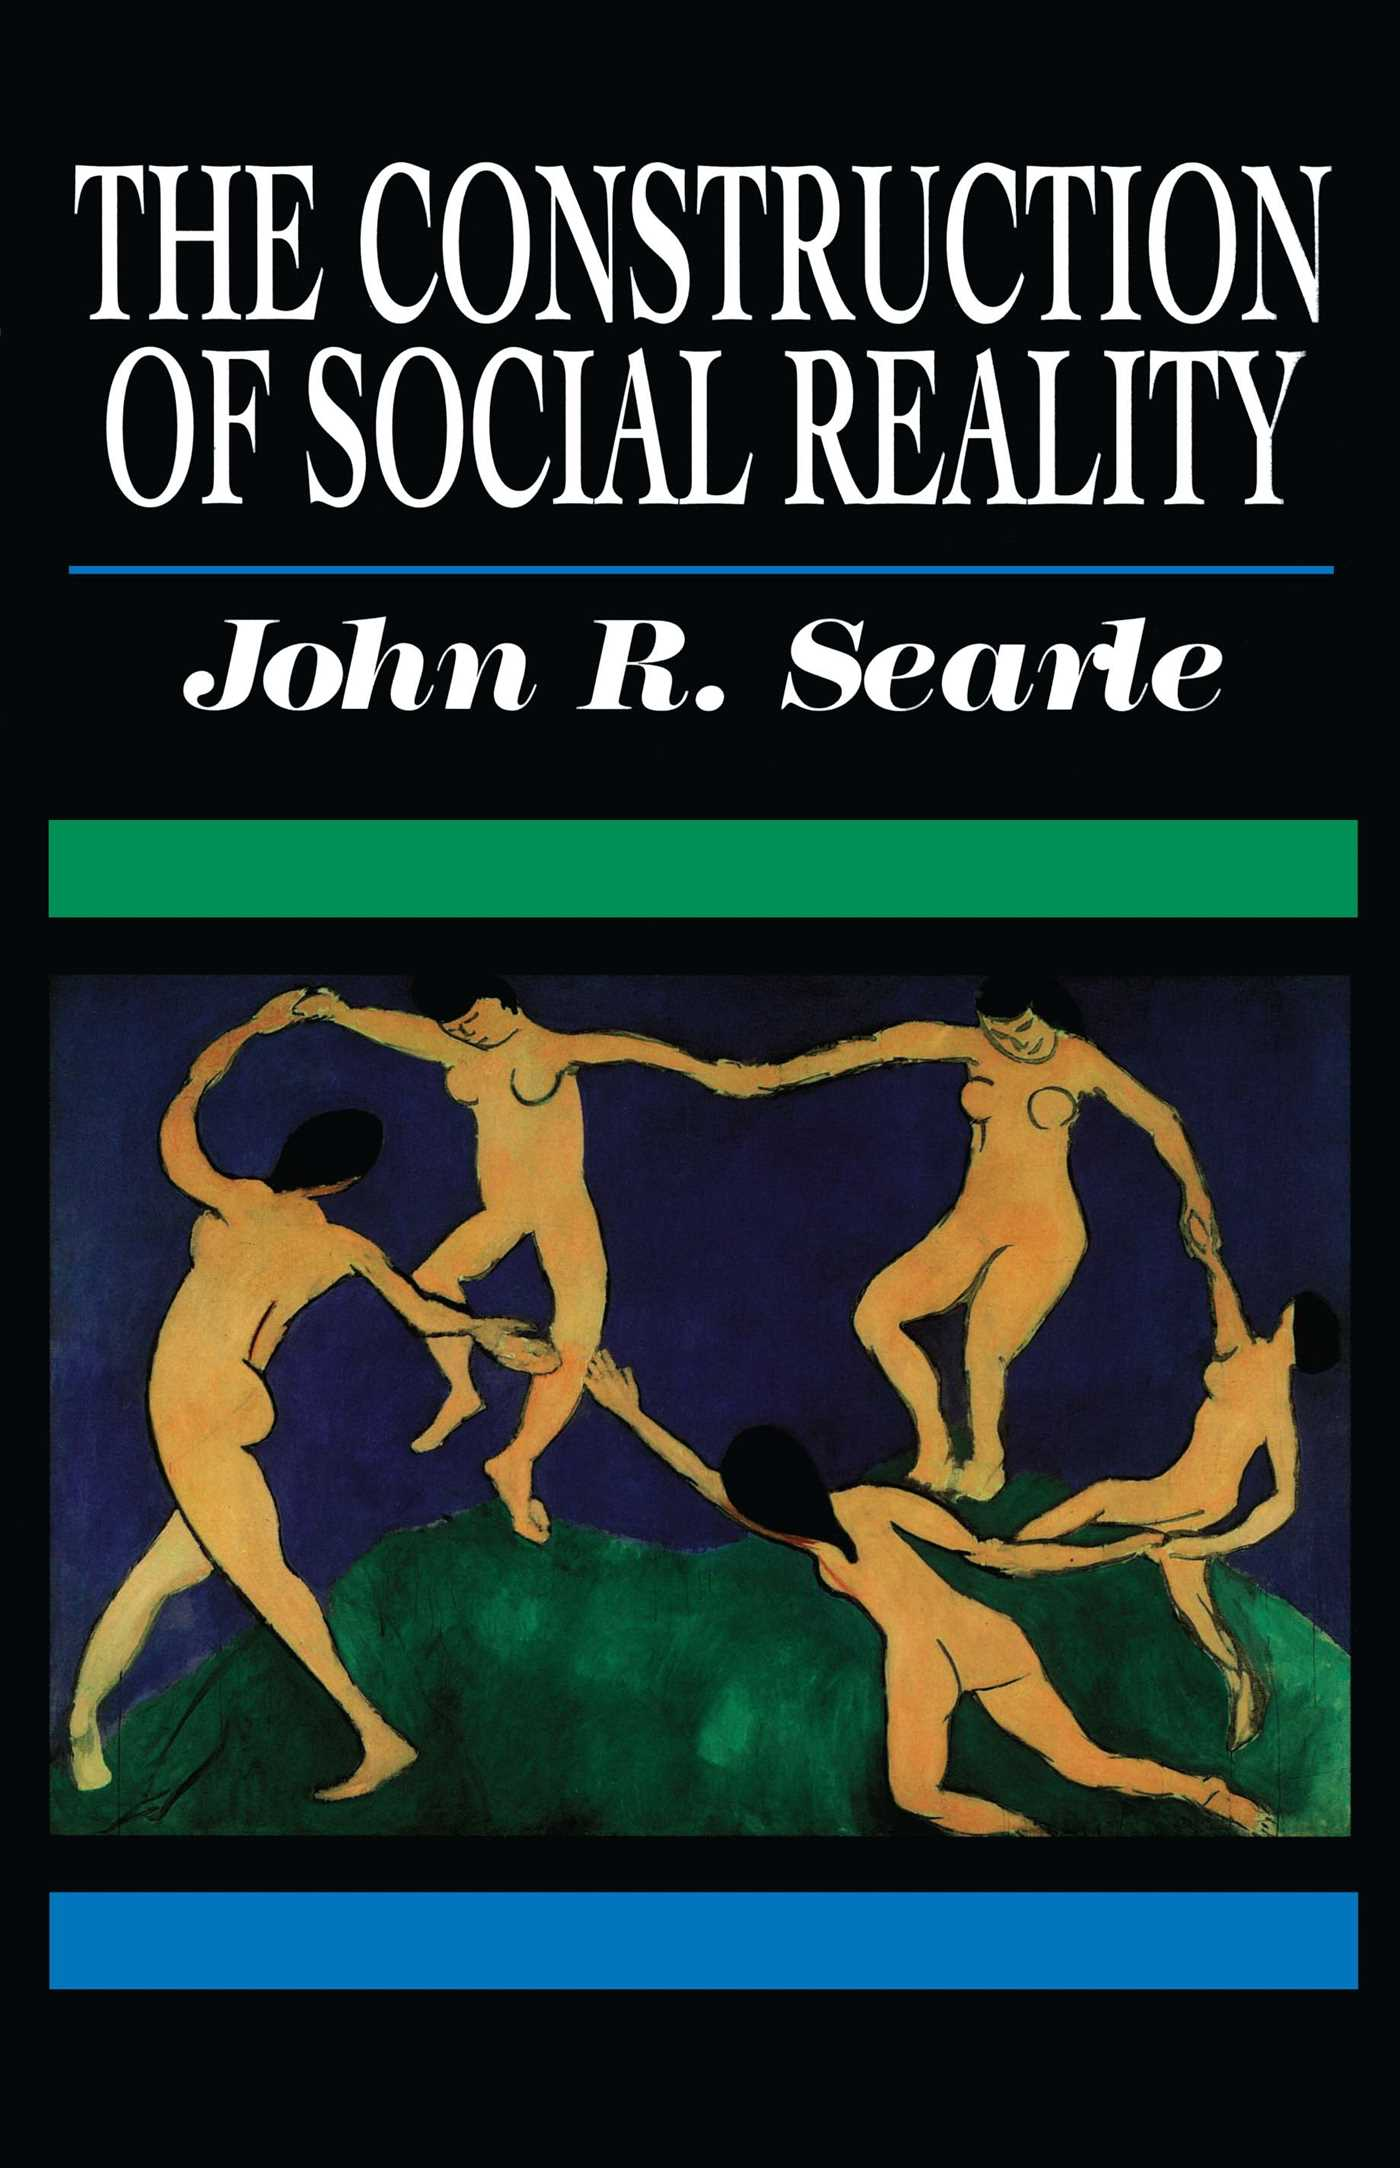 Construction of social reality 9780684831794 hr